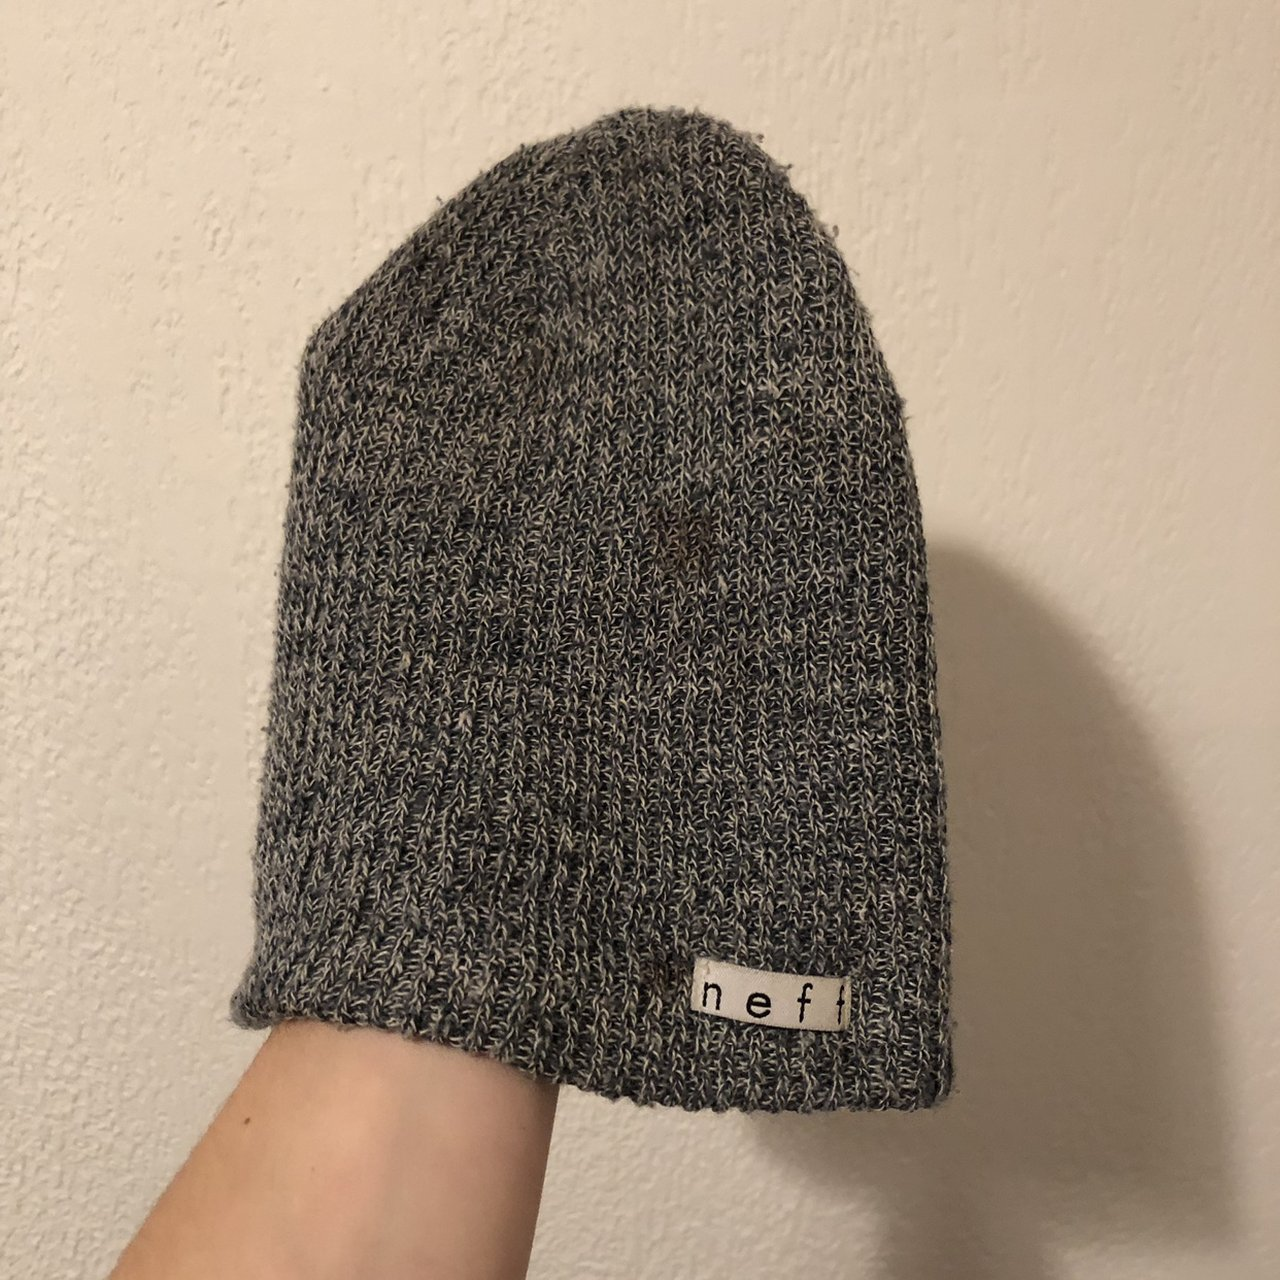 Used   very well-loved Neff every day beanie. Has a few and - Depop 15acd7354bd